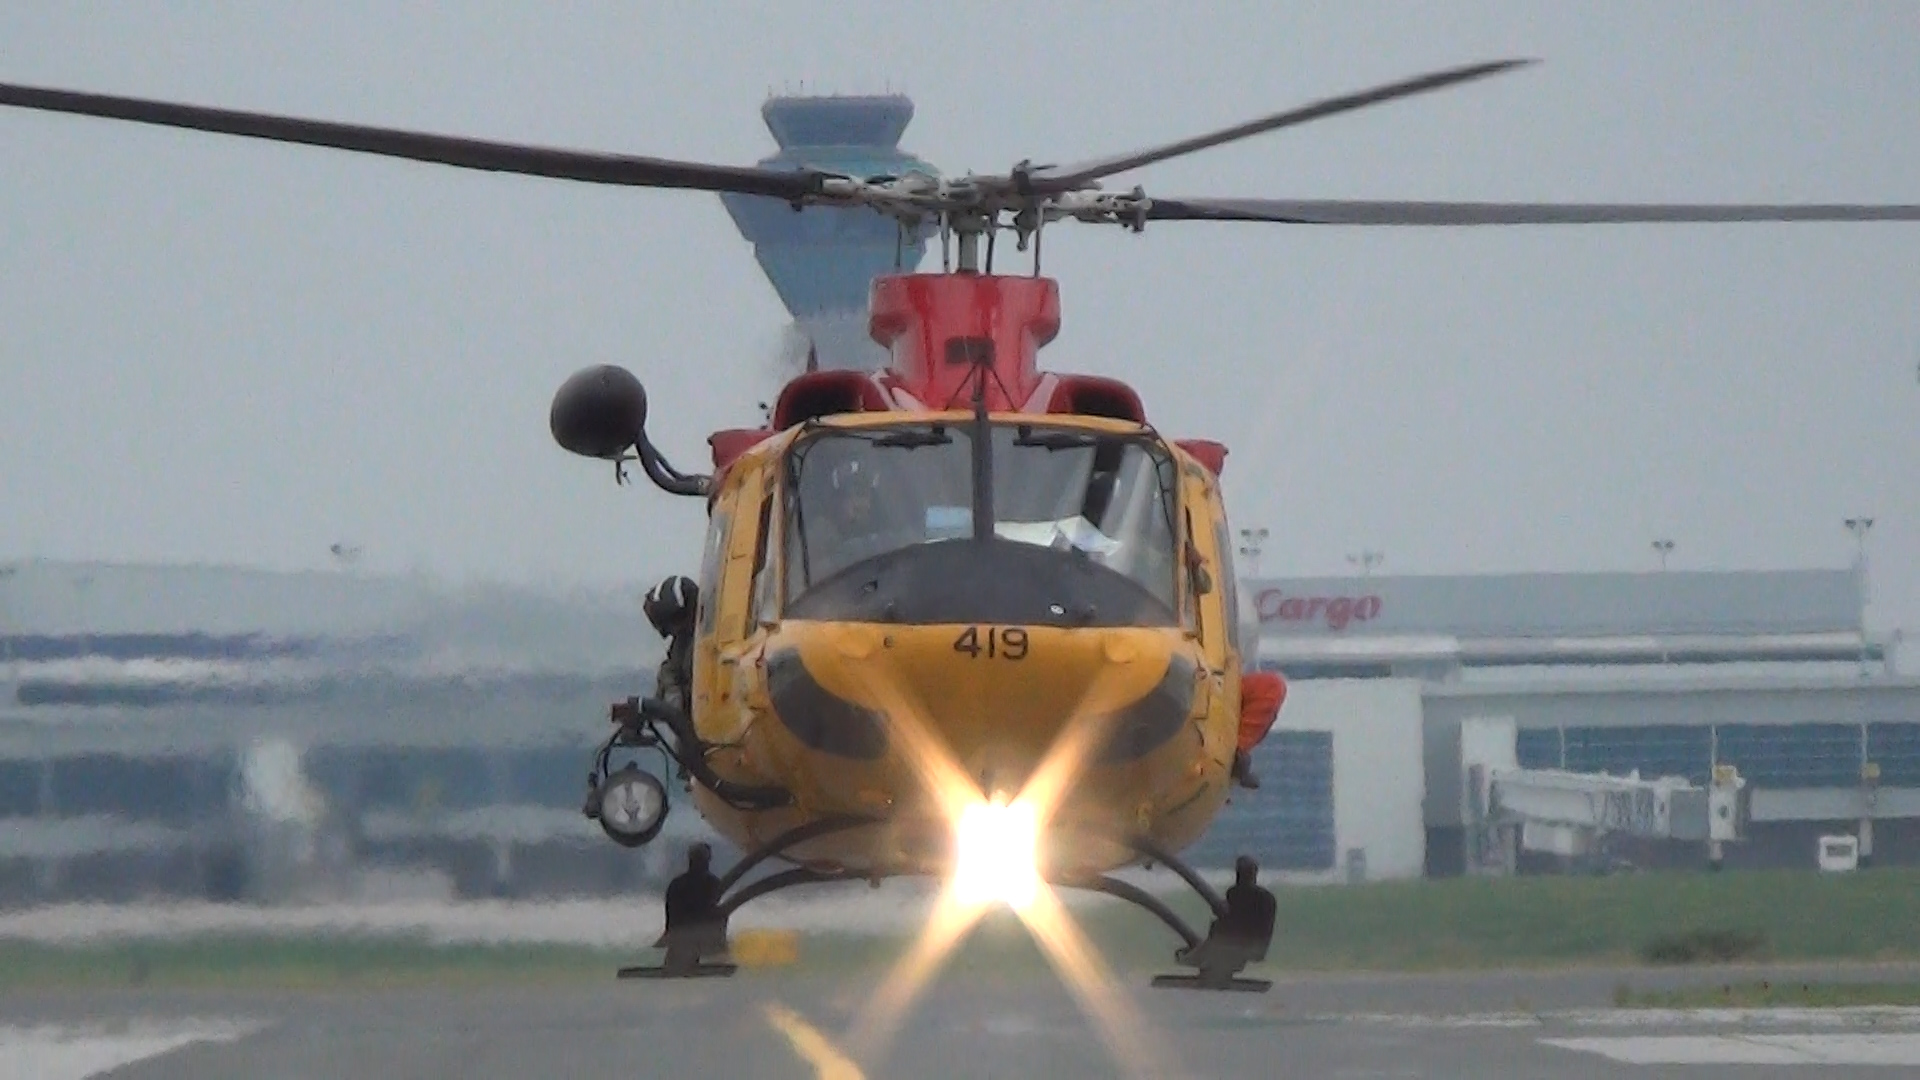 SEARCH AND RESCUE SAR HELICOPTER  Article  Thu 25 May 2017 050414 PM UT